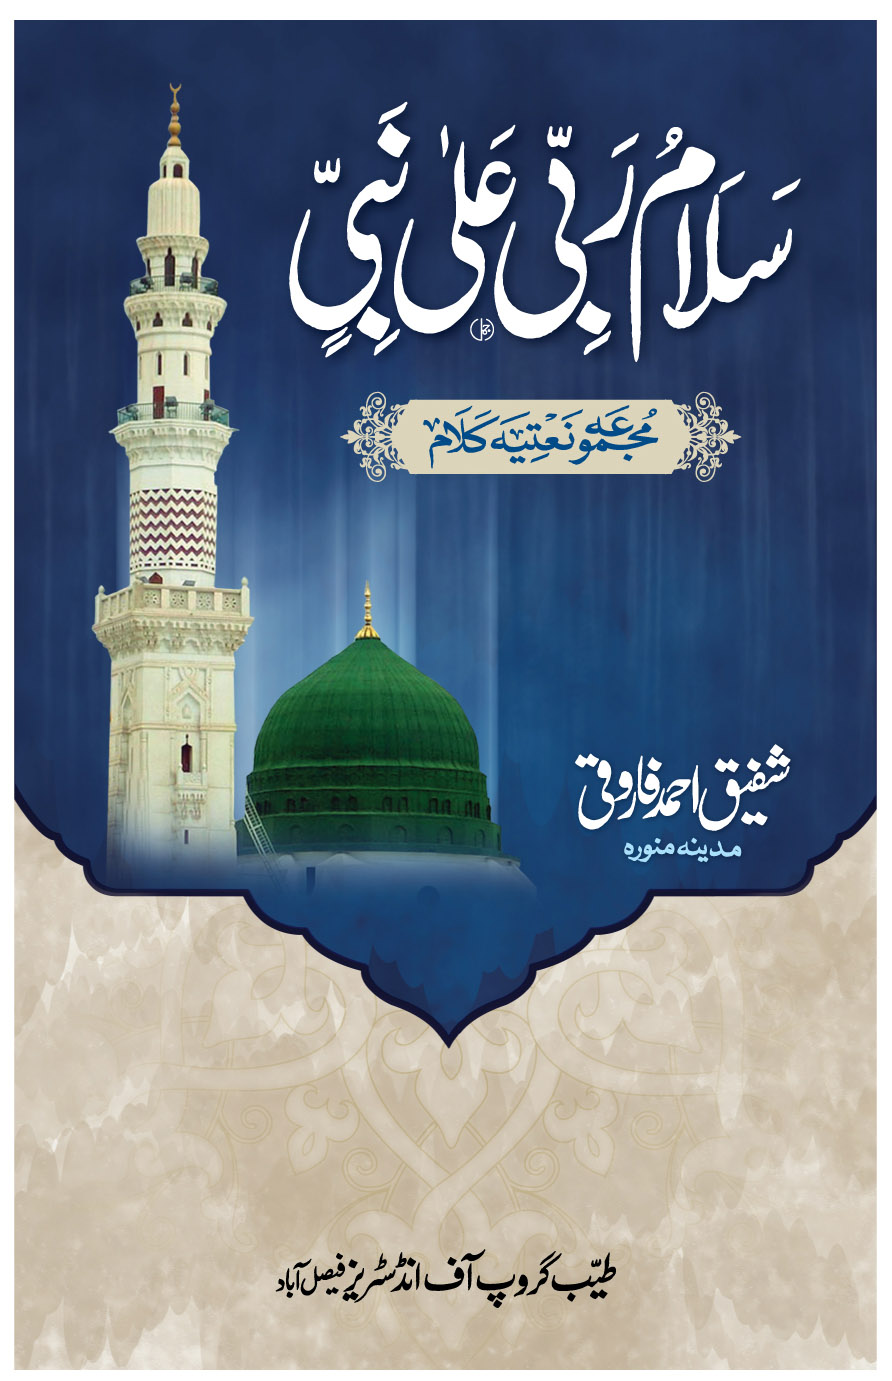 book covers by engr shakeel talat at com islamic book cover a book cover for islamic book which is naat sharif